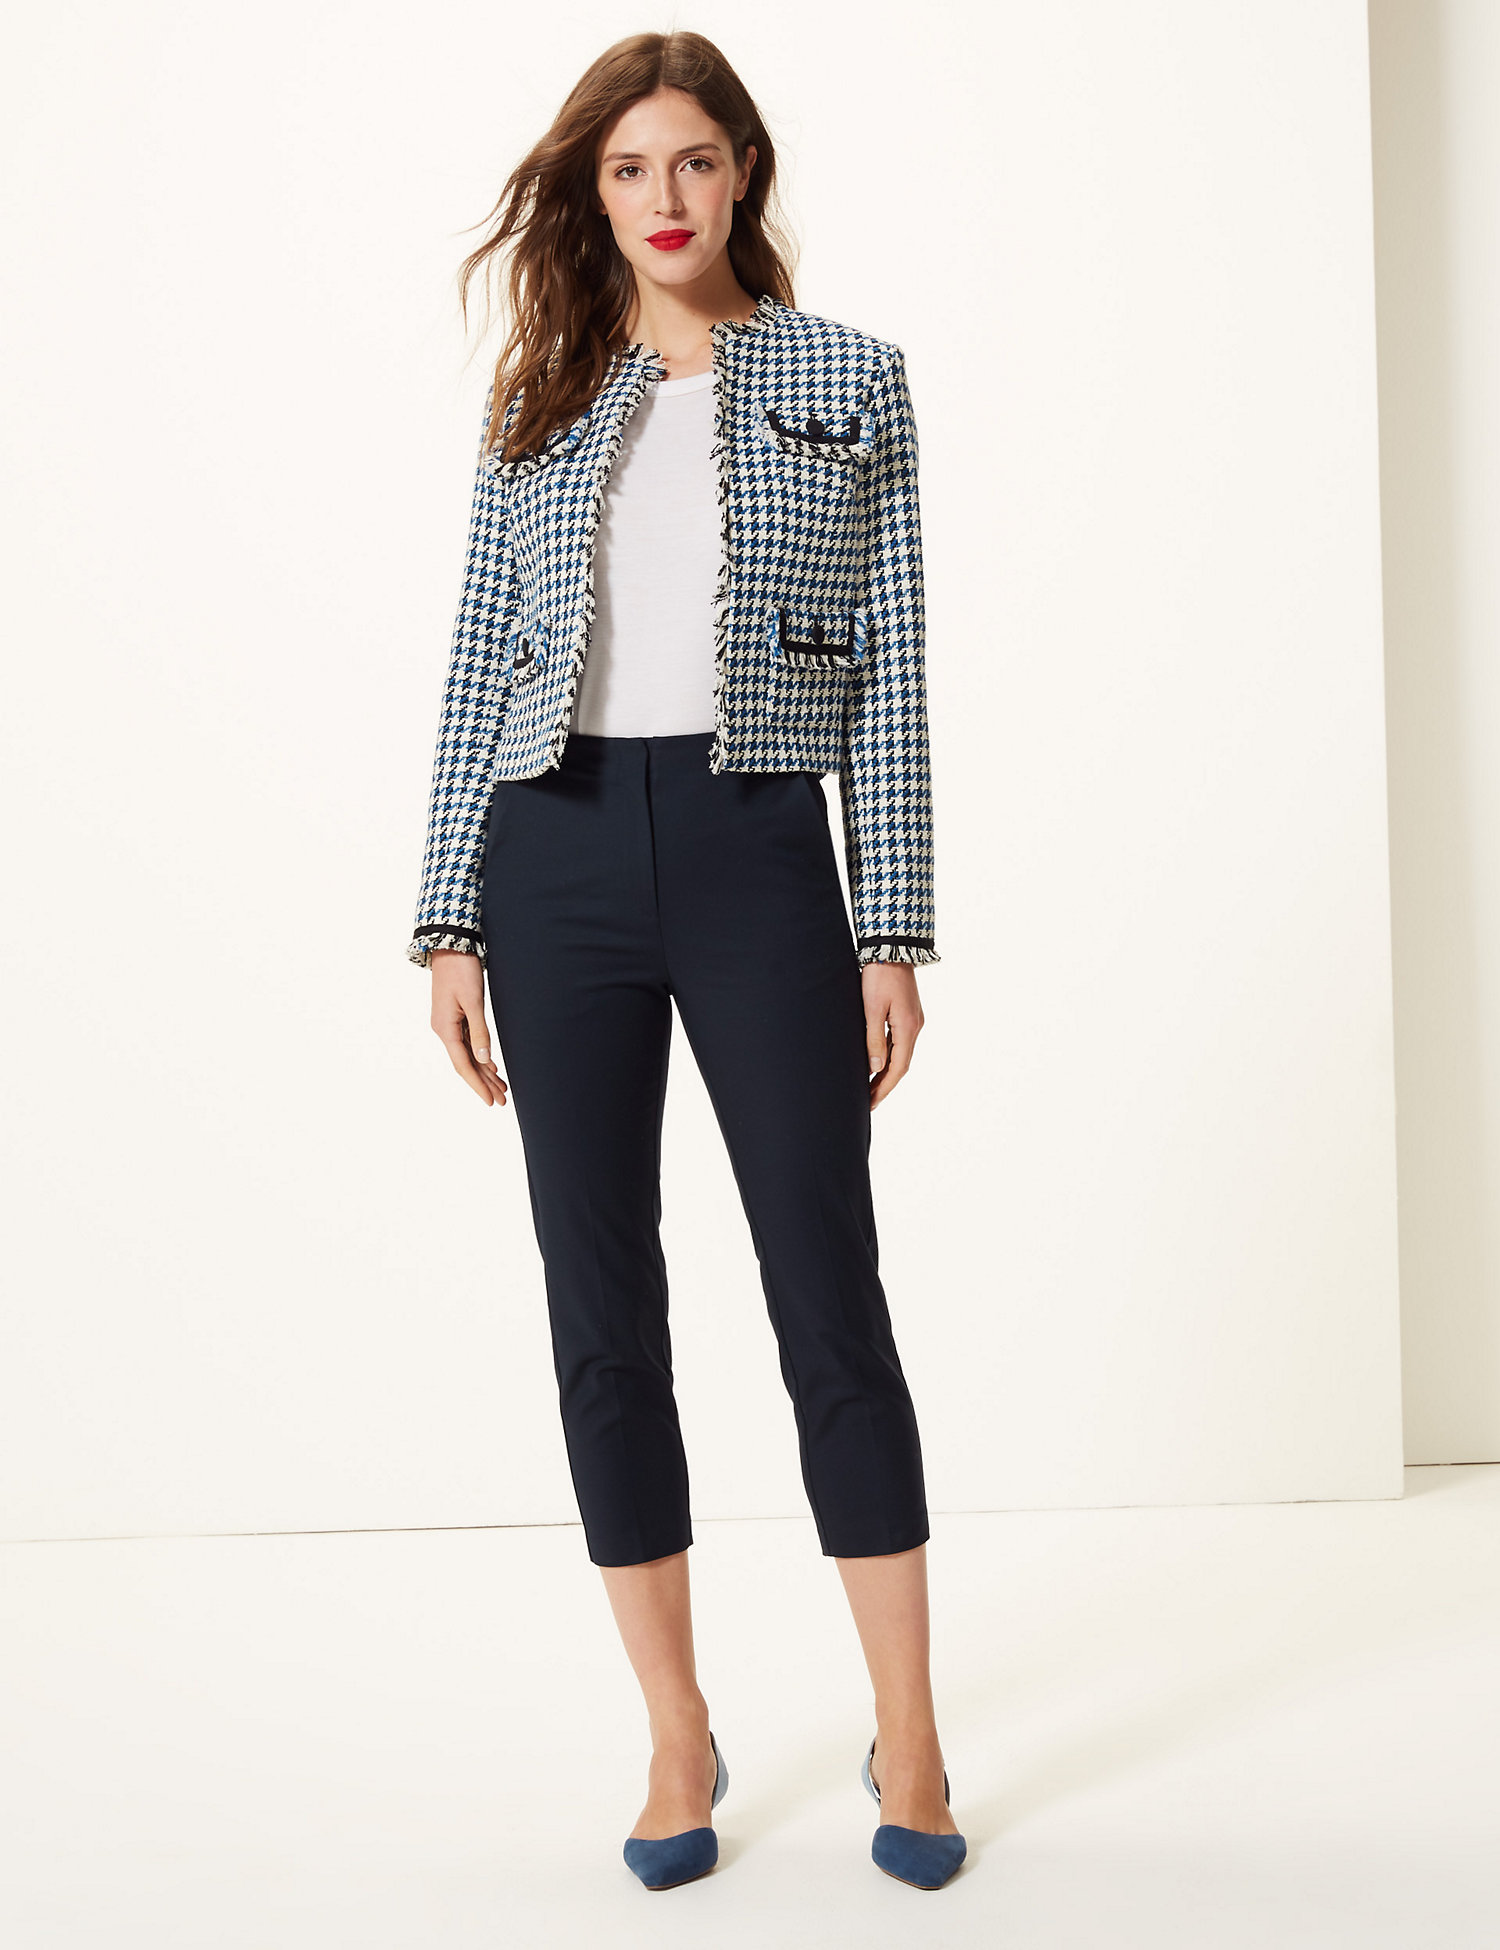 M&S Mia Slim Cropped Trousers